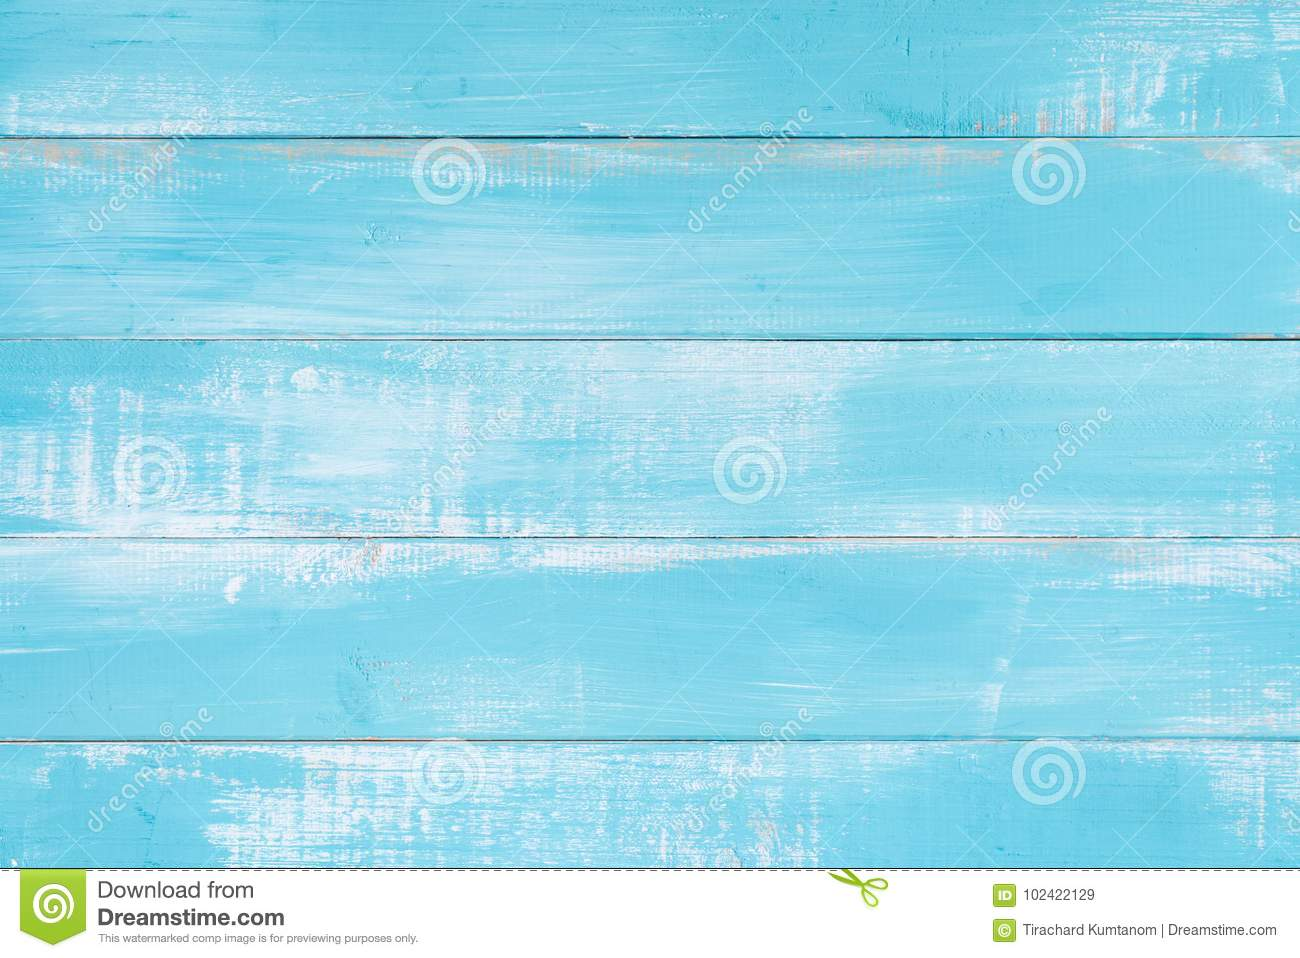 Blue wood texture background surface with old natural pattern or old wood texture table top view.